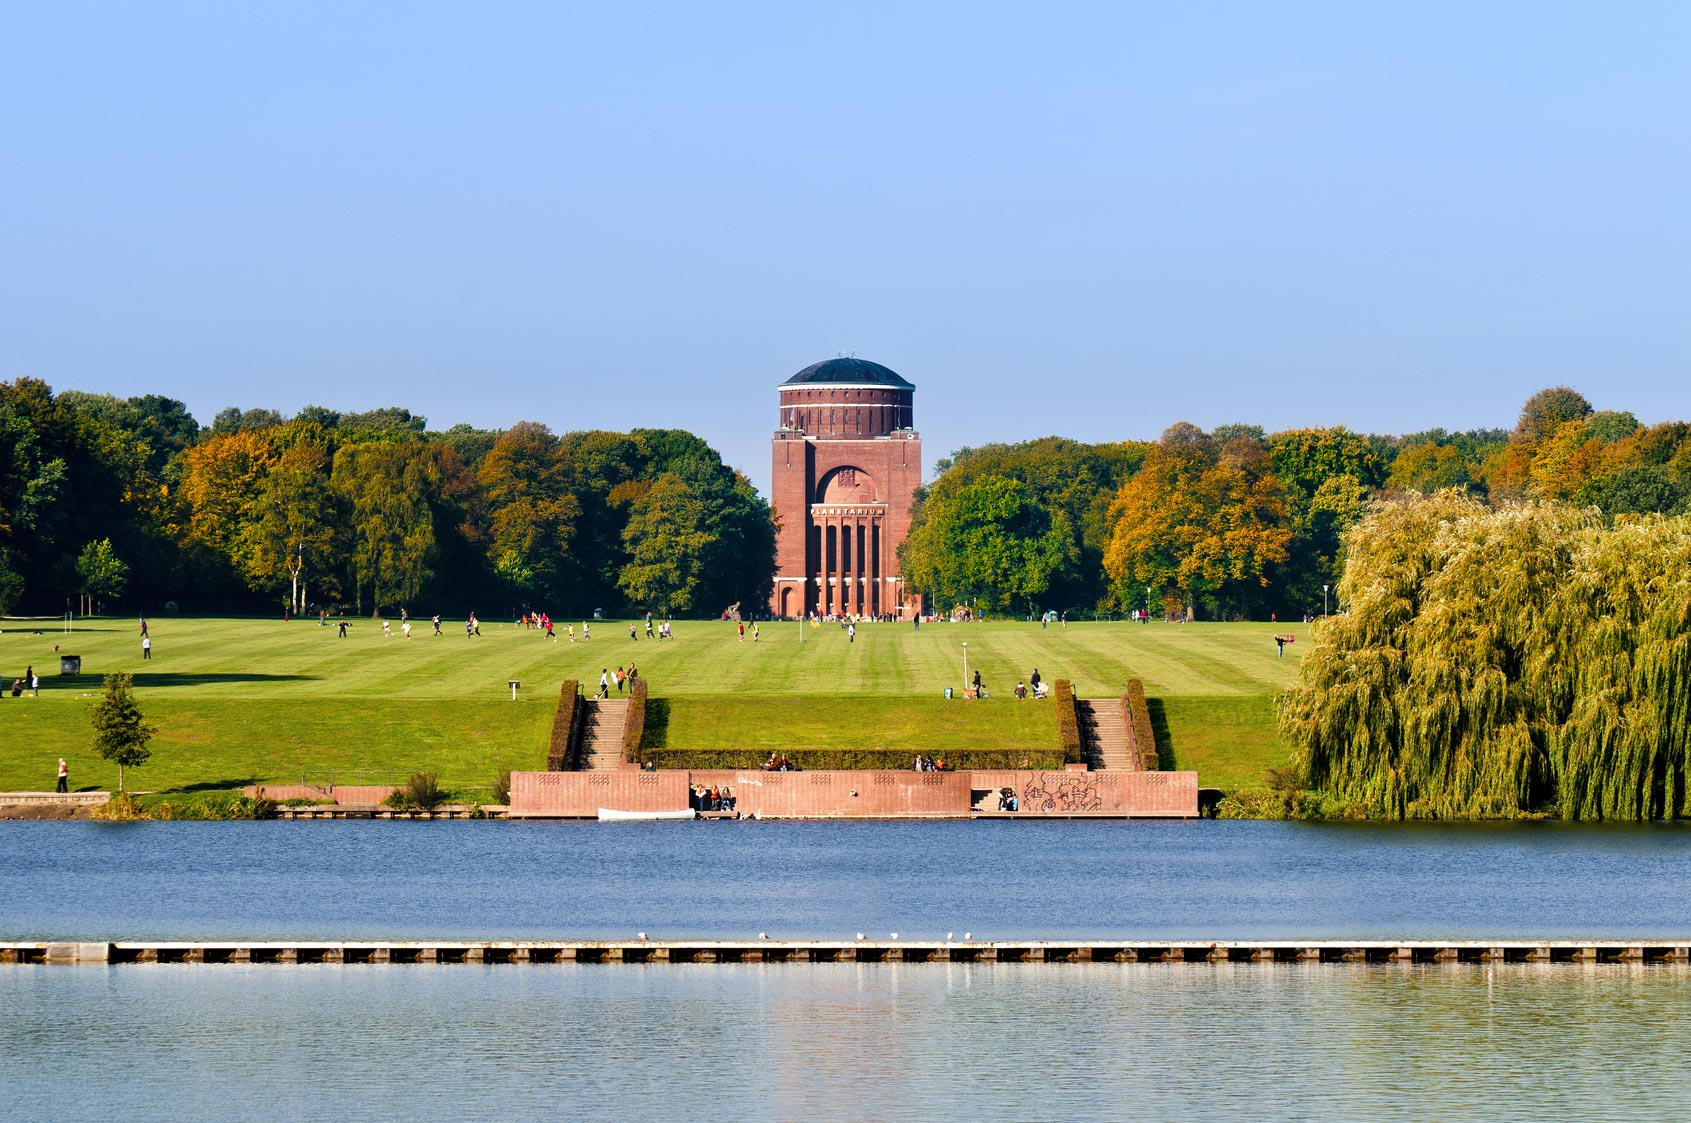 The Planetarium in Hamburg´s City Park